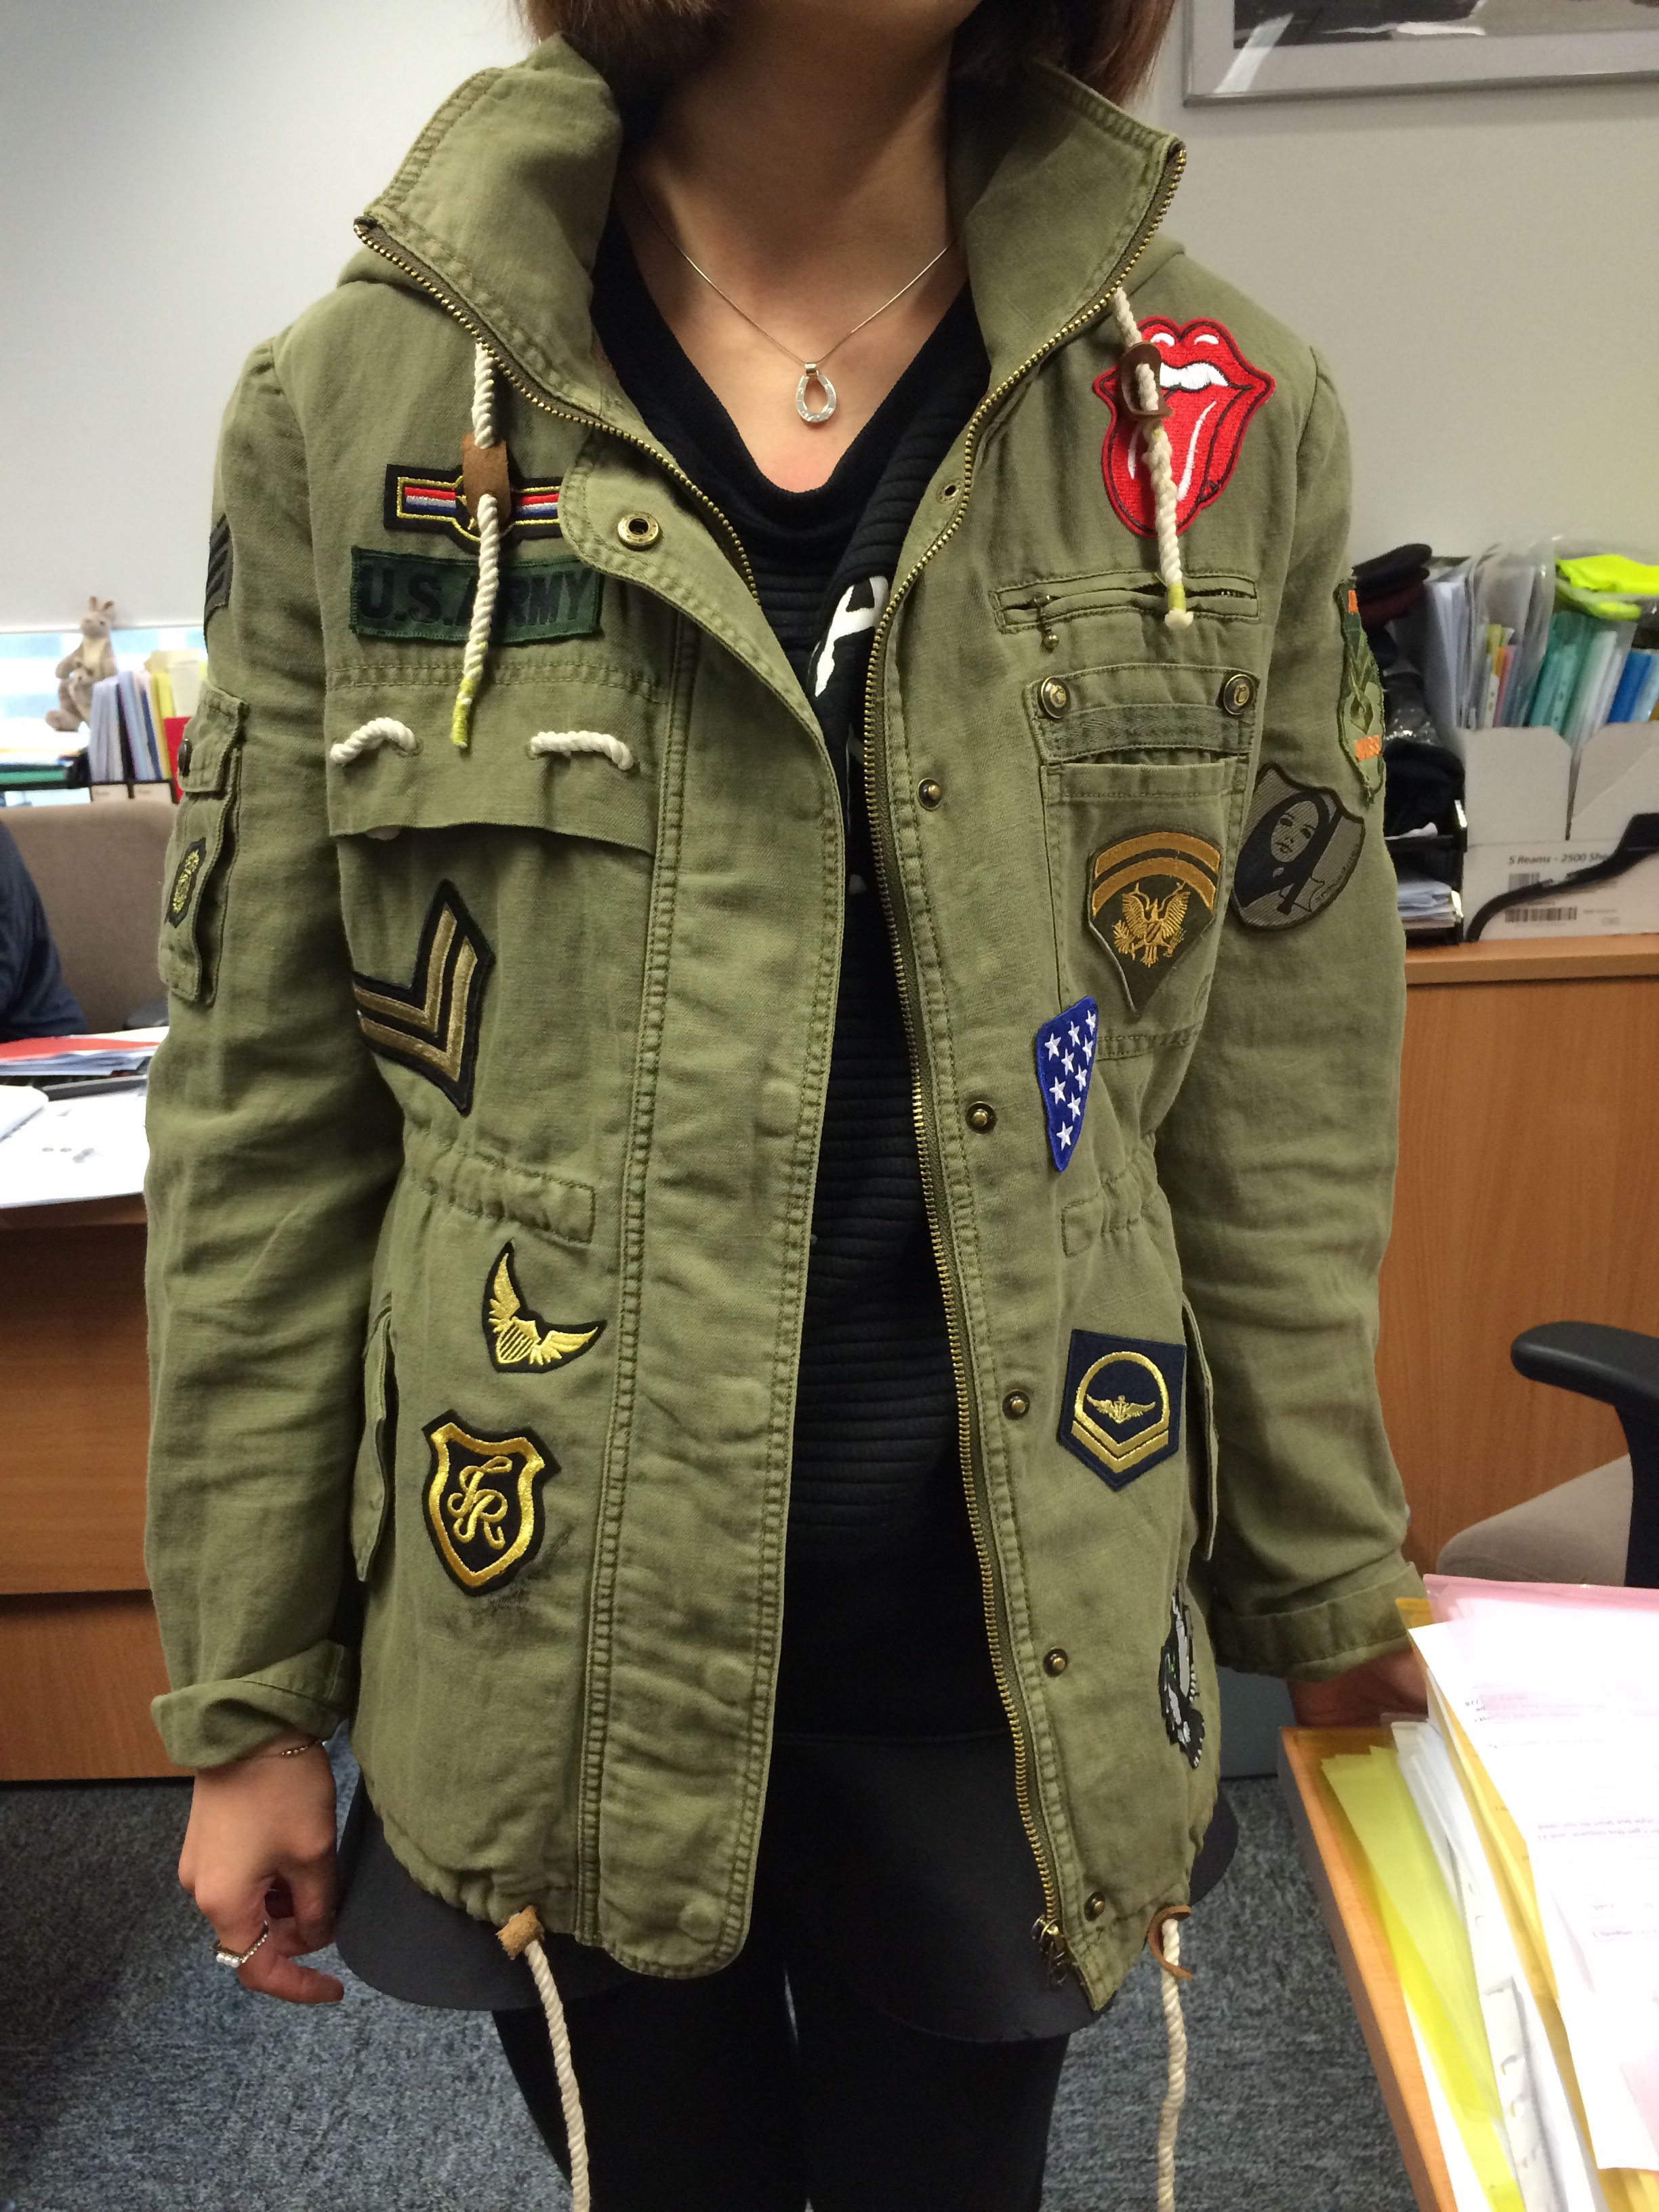 My Diy Badges And Patches Military Jacket Look Pinterest Military Jacket Badges And Patches